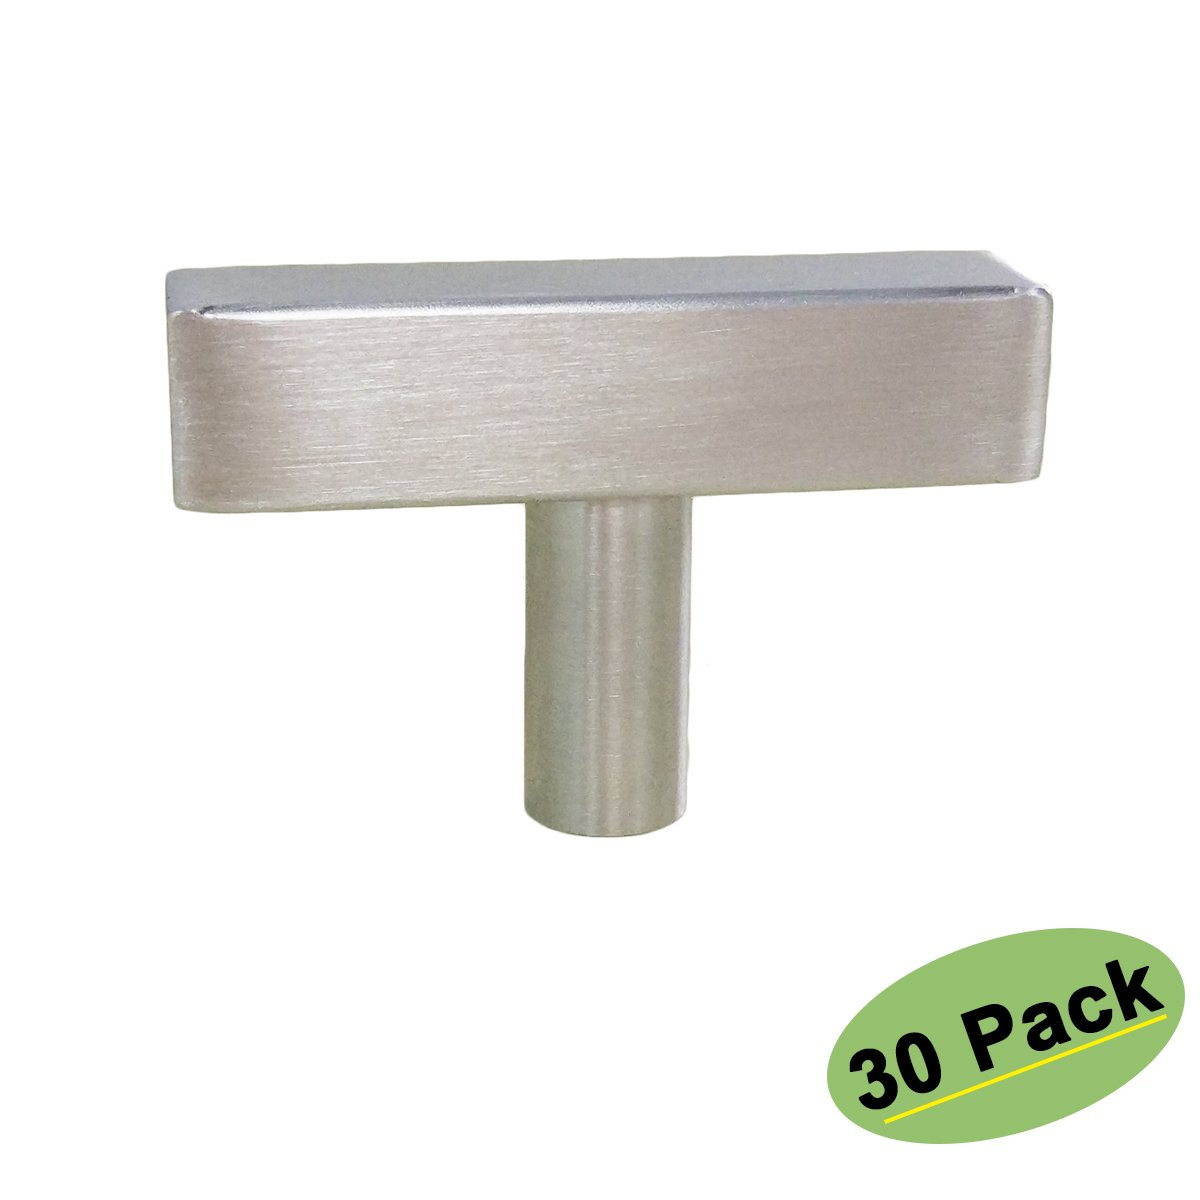 square single hole cabinet pulls and knobs brushed nickel stainless steel 30 packhomdiy hdj22sn